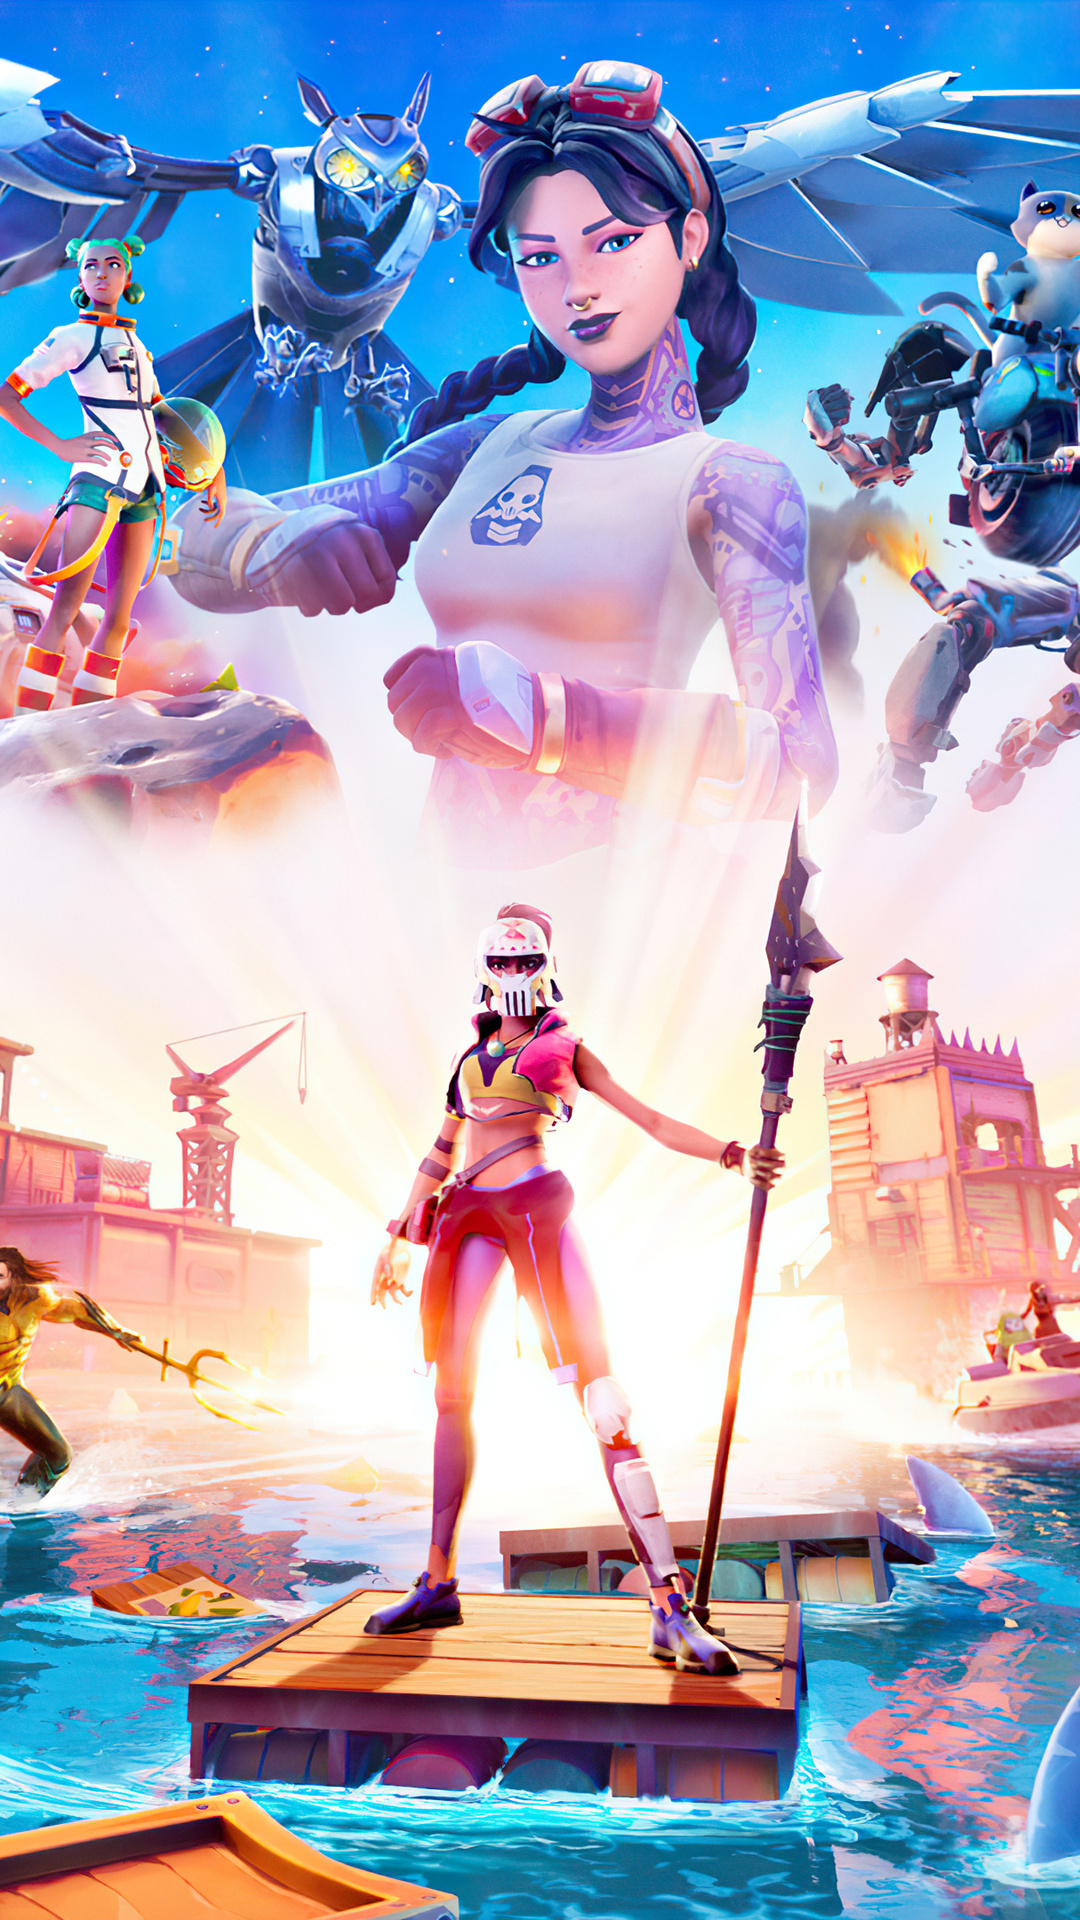 1080x1920 Fortnite Chapter 2 Season 3 Iphone 7 6s 6 Plus Pixel Xl One Plus 3 3t 5 Hd 4k Wallpapers Images Backgrounds Photos And Pictures